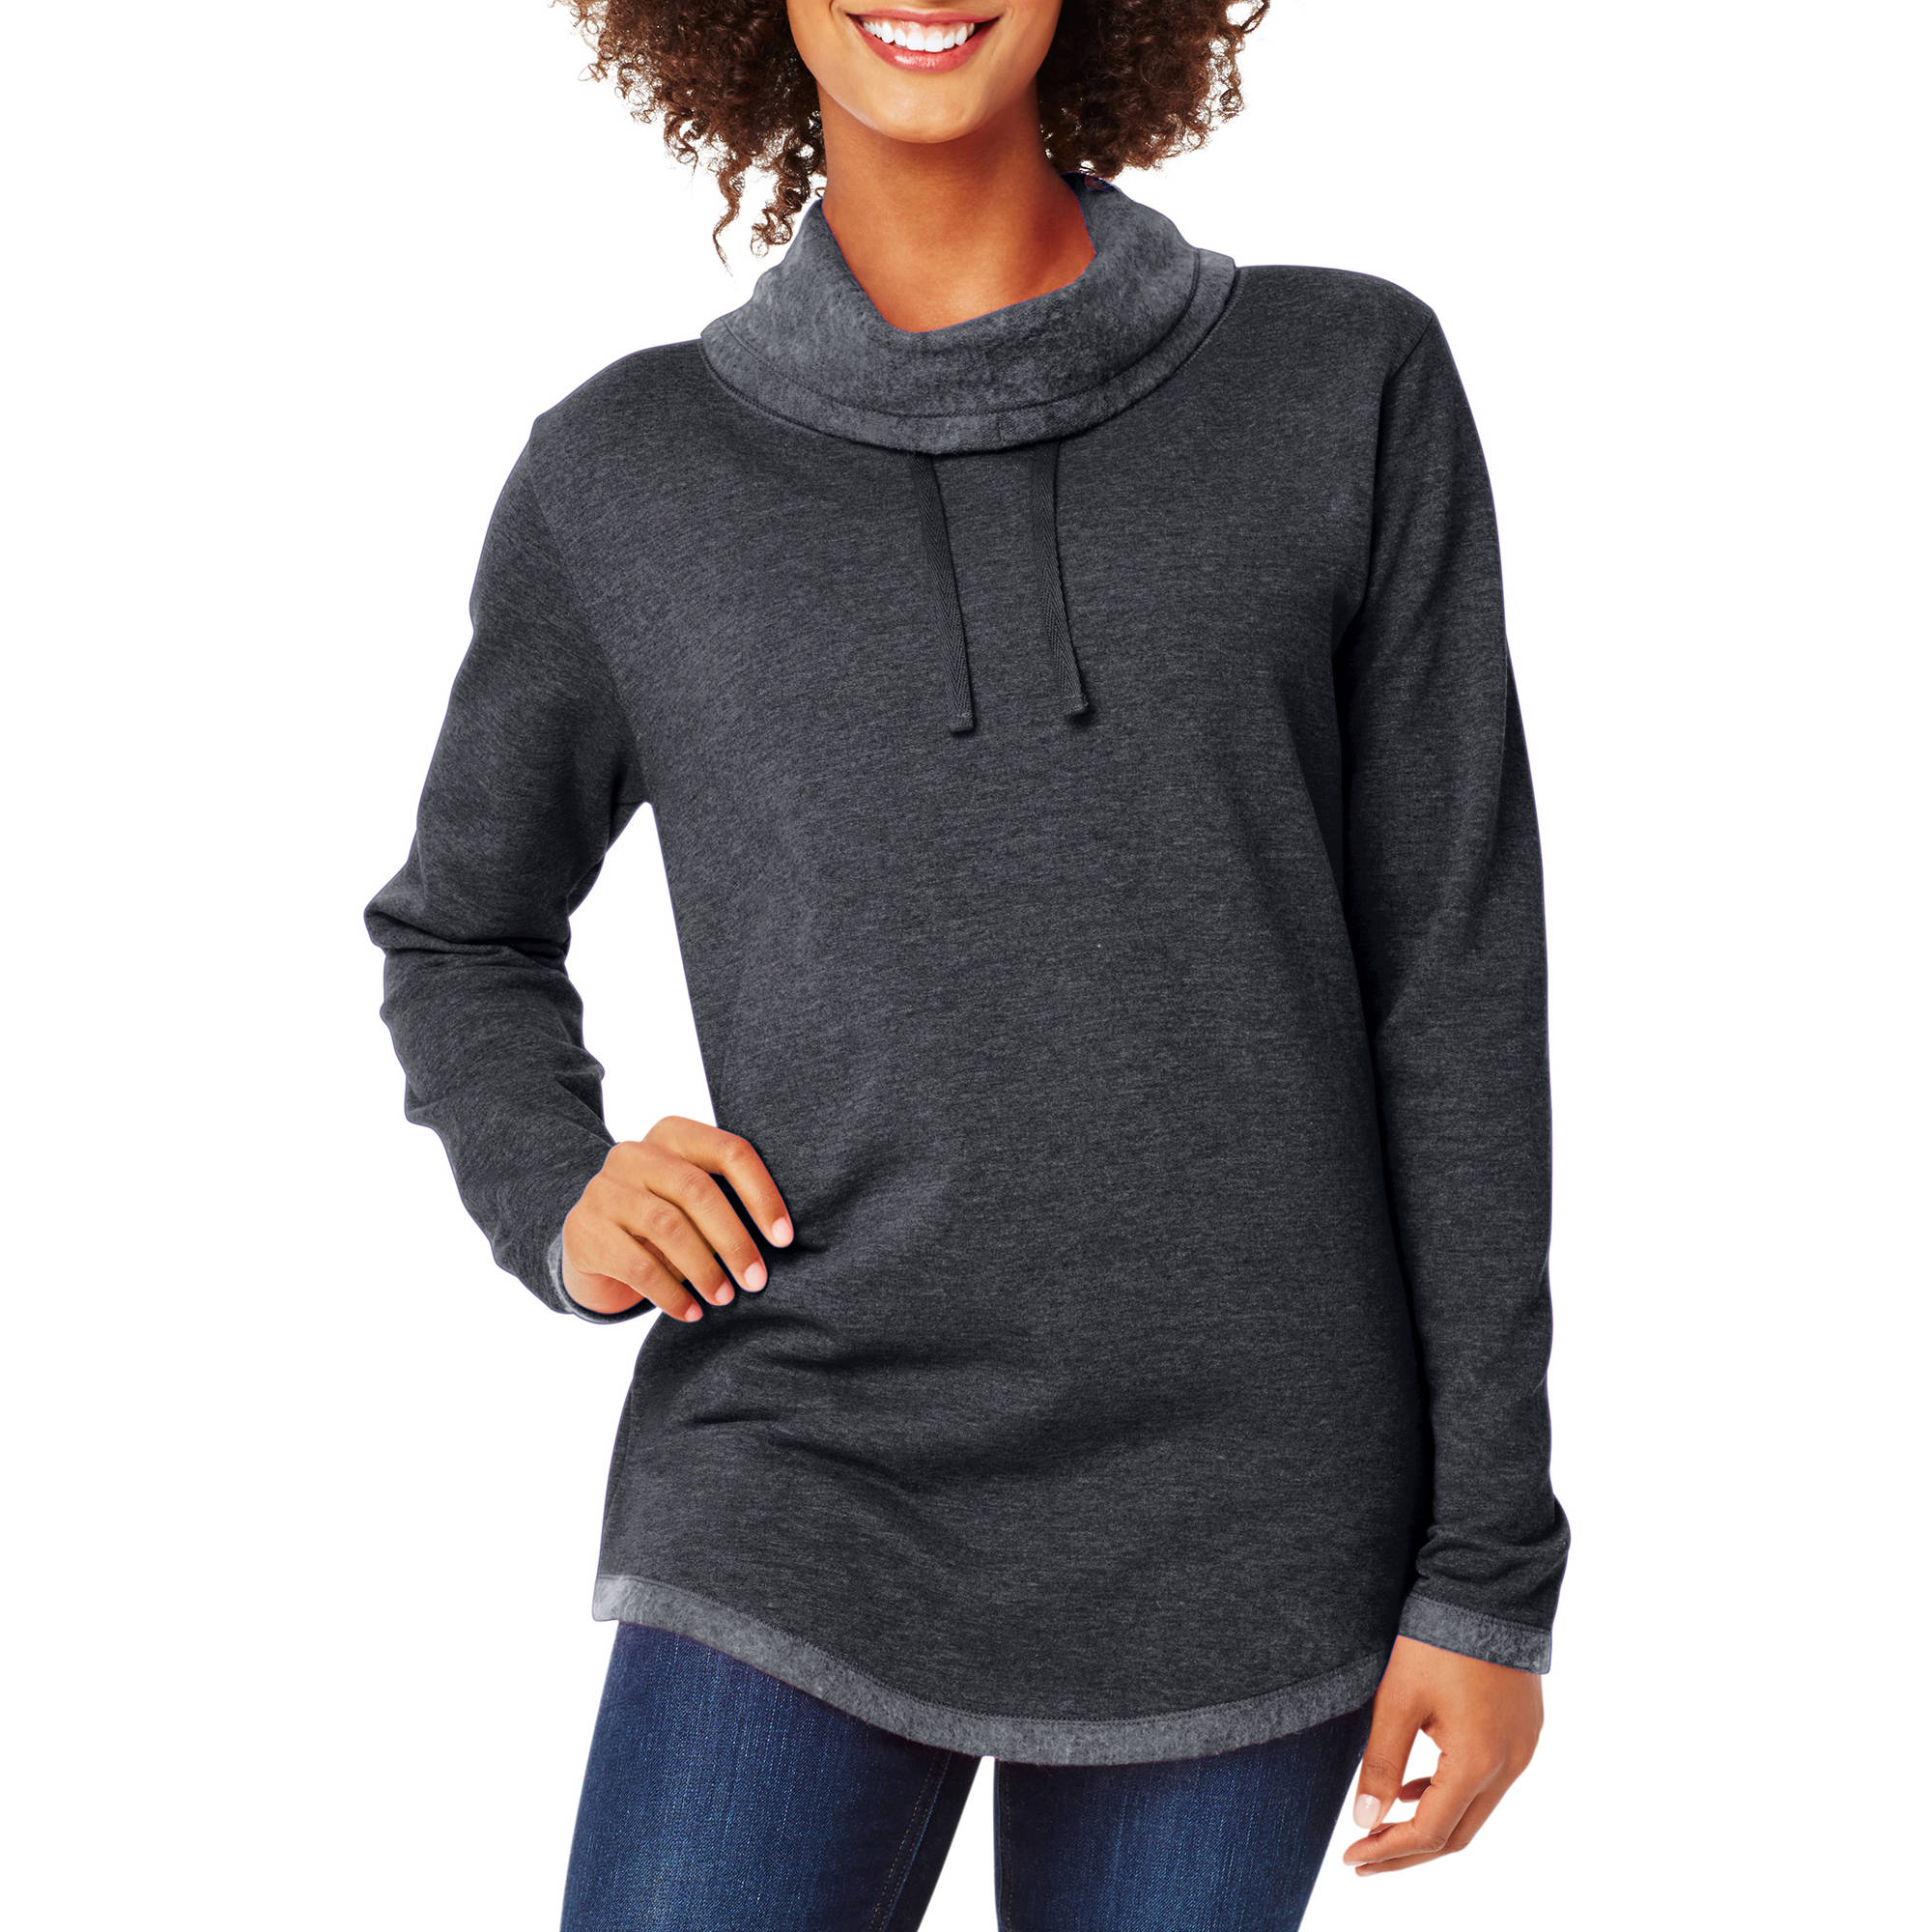 Hanes Women's Lightweight Fleece Cowl Neck